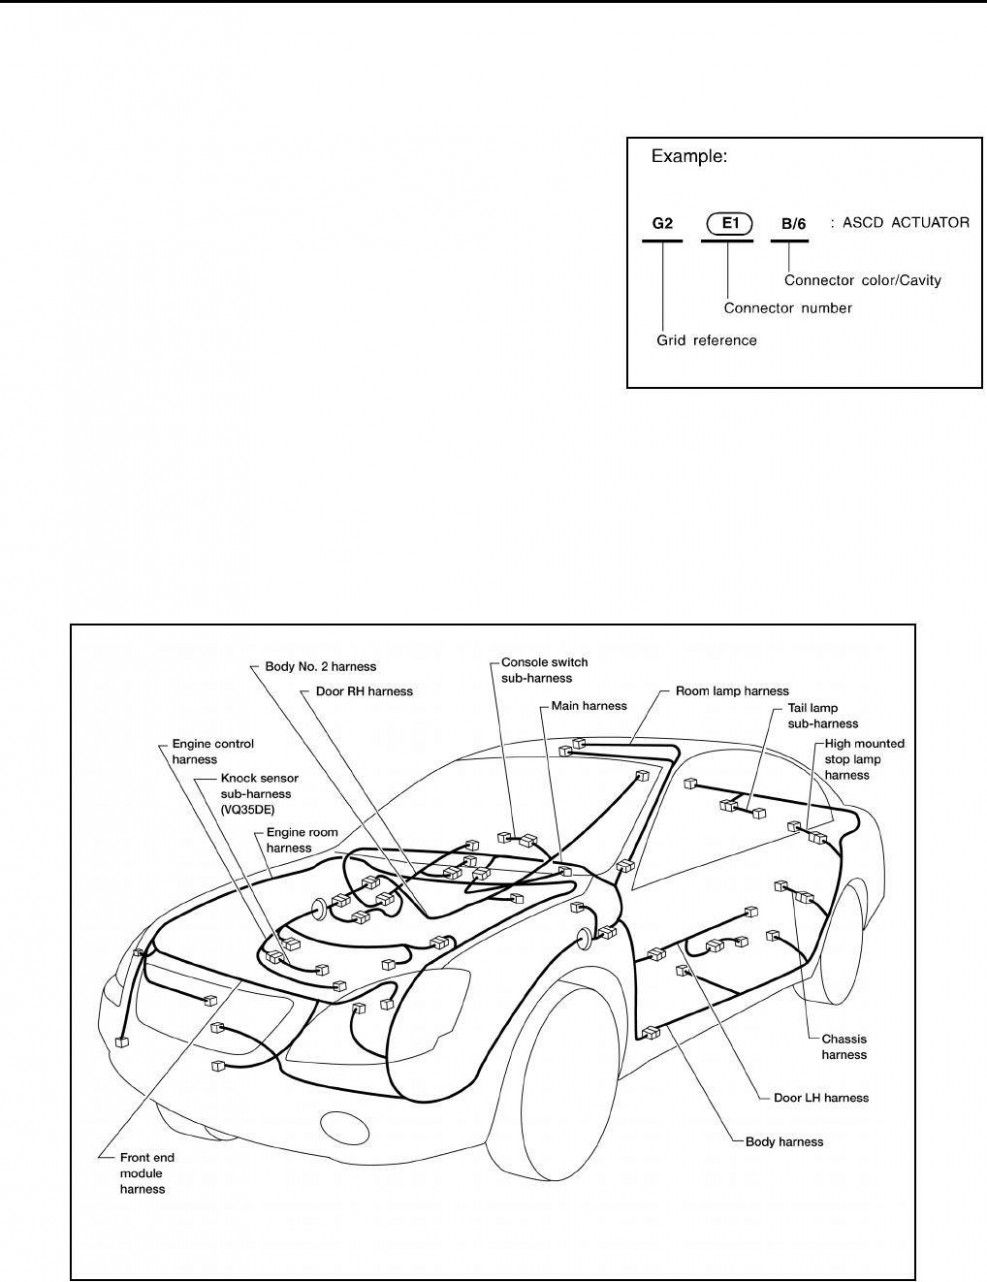 Engine Diagram Vq6de Pdf Engine Diagram Vq6de Pdf Engine Diagram